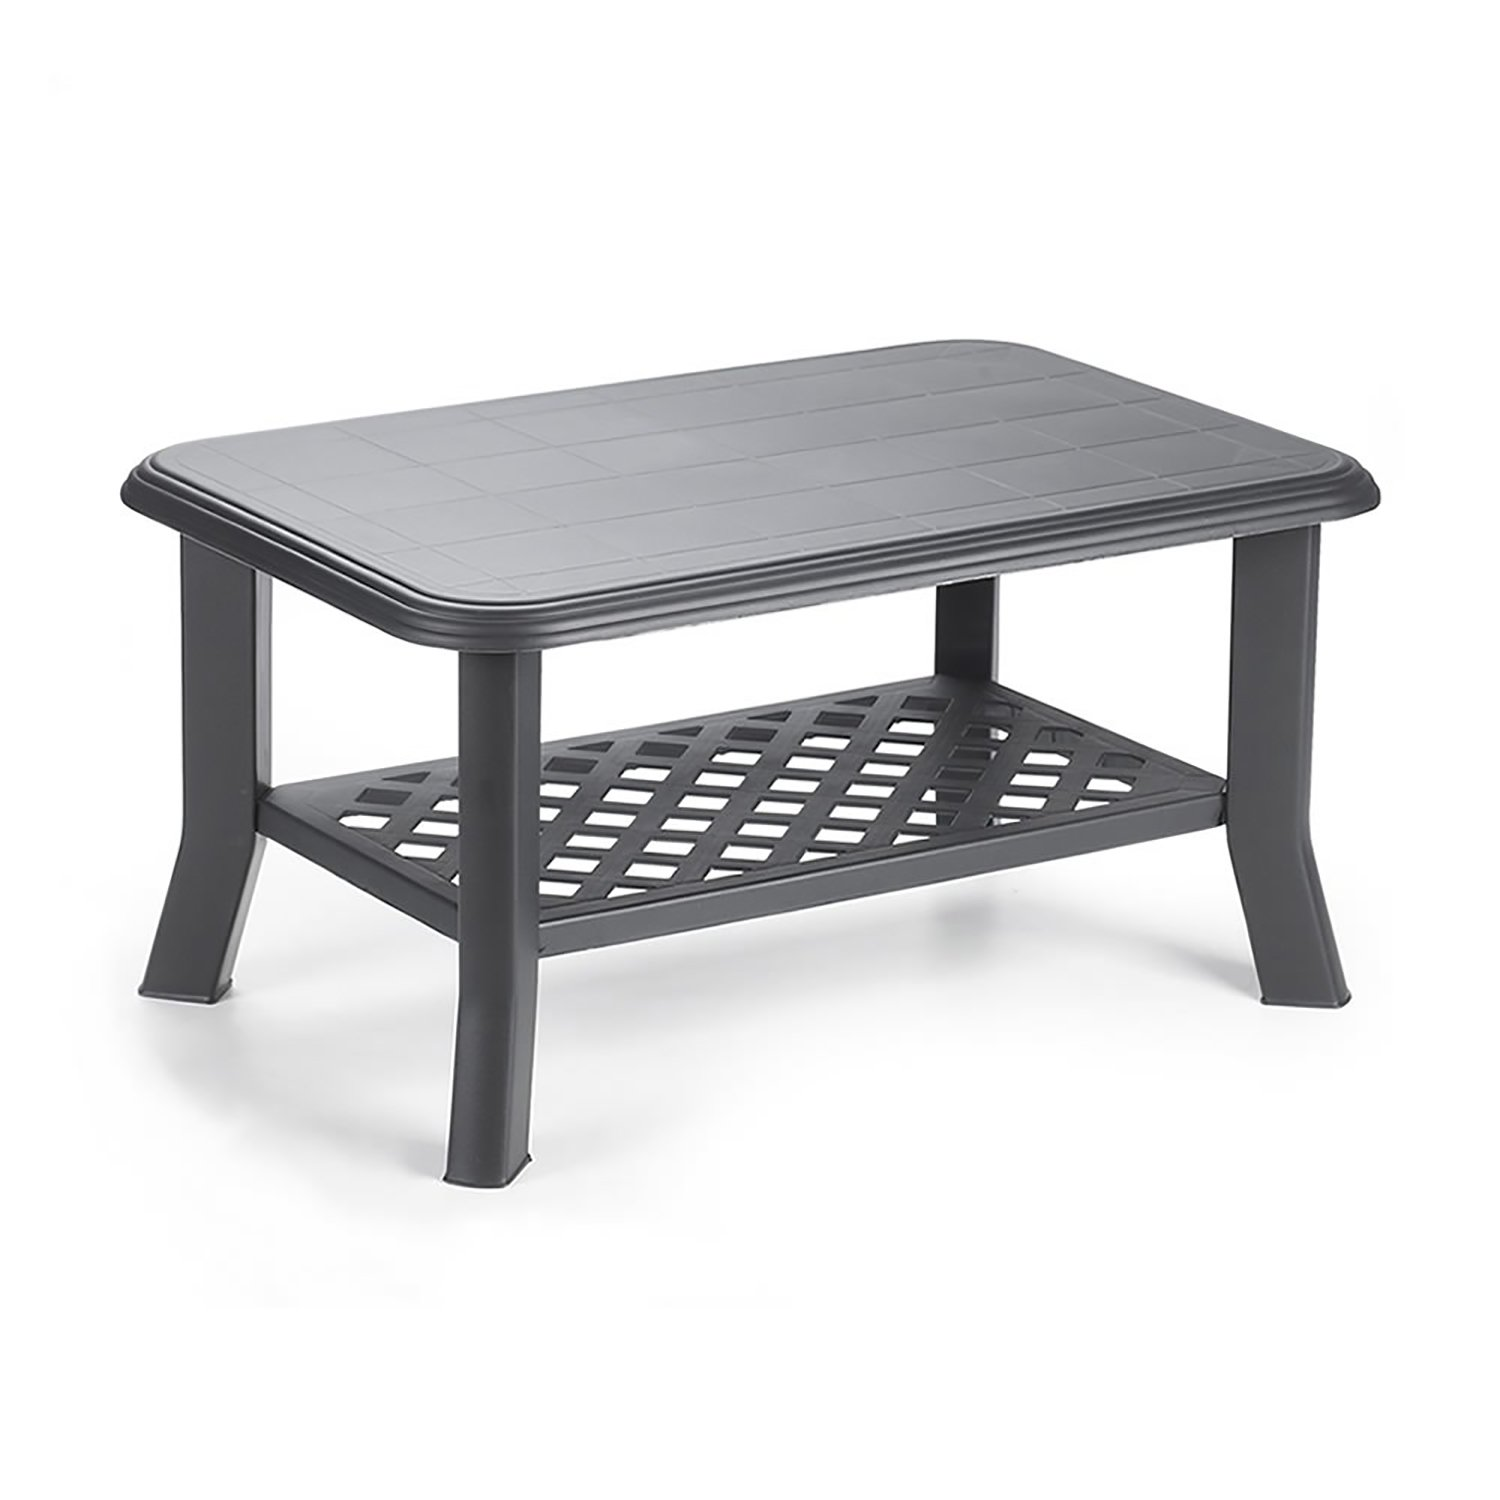 Miraculous Mojawo Rectangular Garden Table 90 X 60 Cm Charcoal Grey Onthecornerstone Fun Painted Chair Ideas Images Onthecornerstoneorg